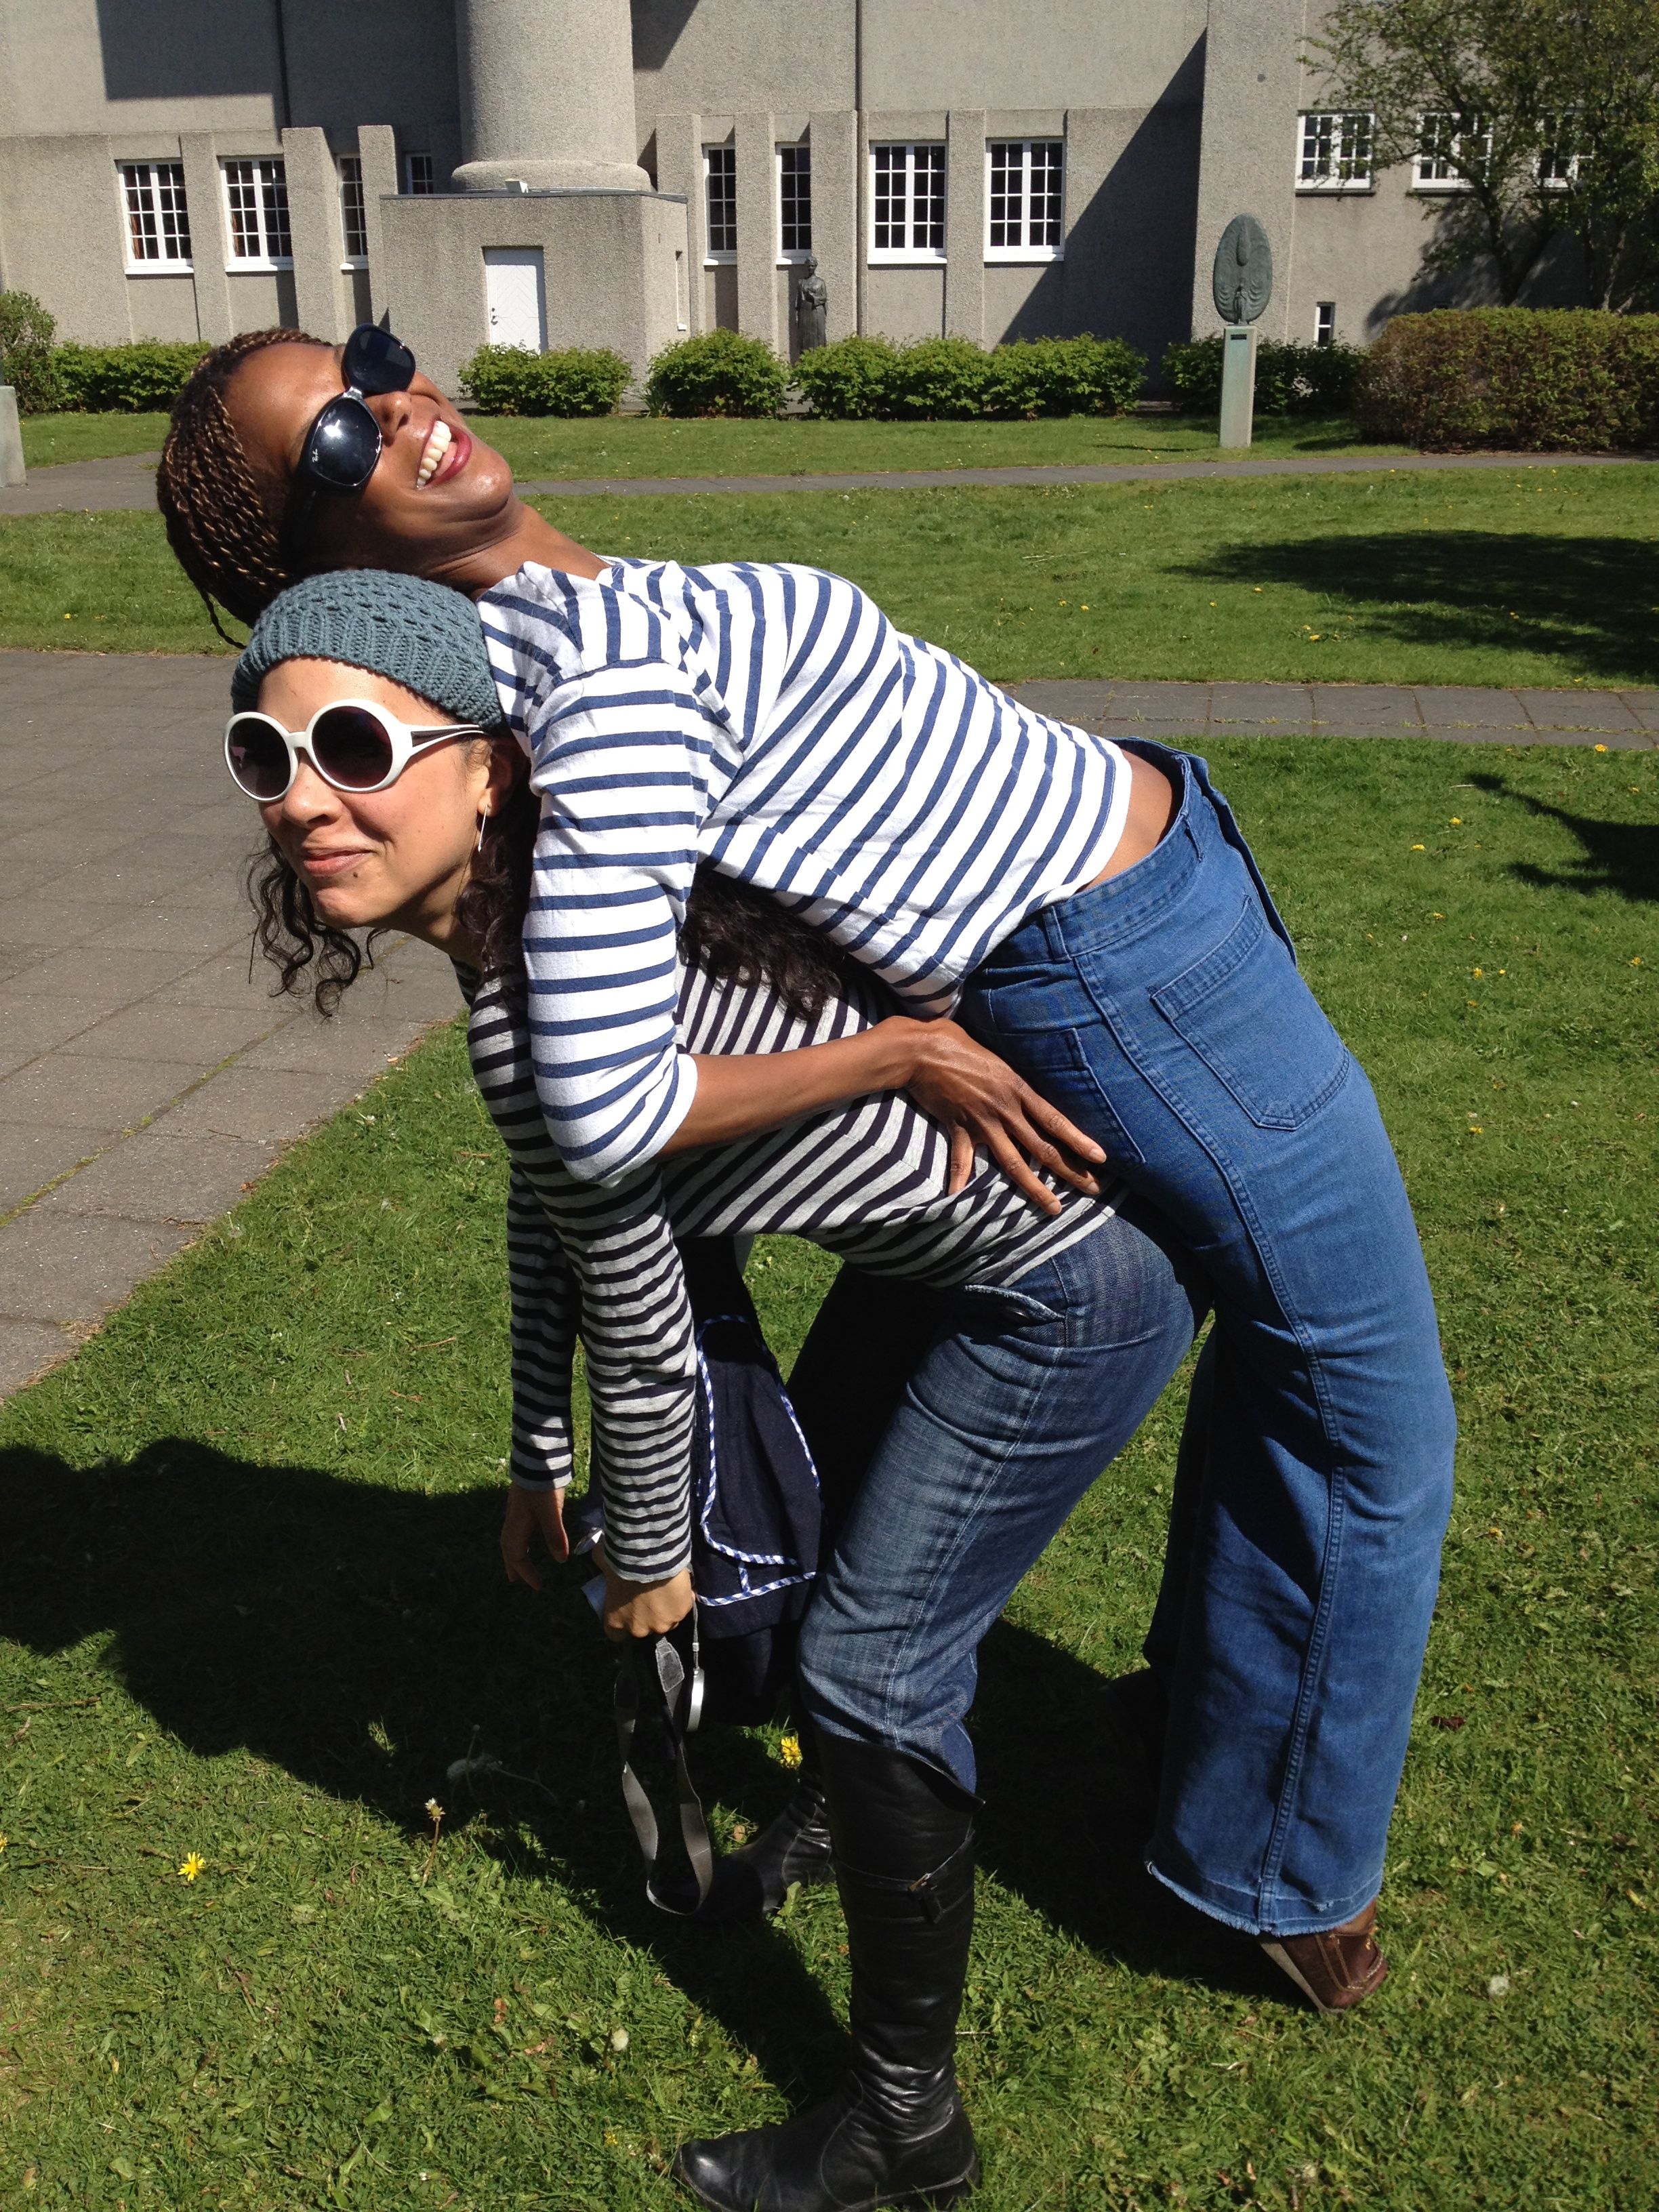 Me and Melissa horsing around in Iceland.